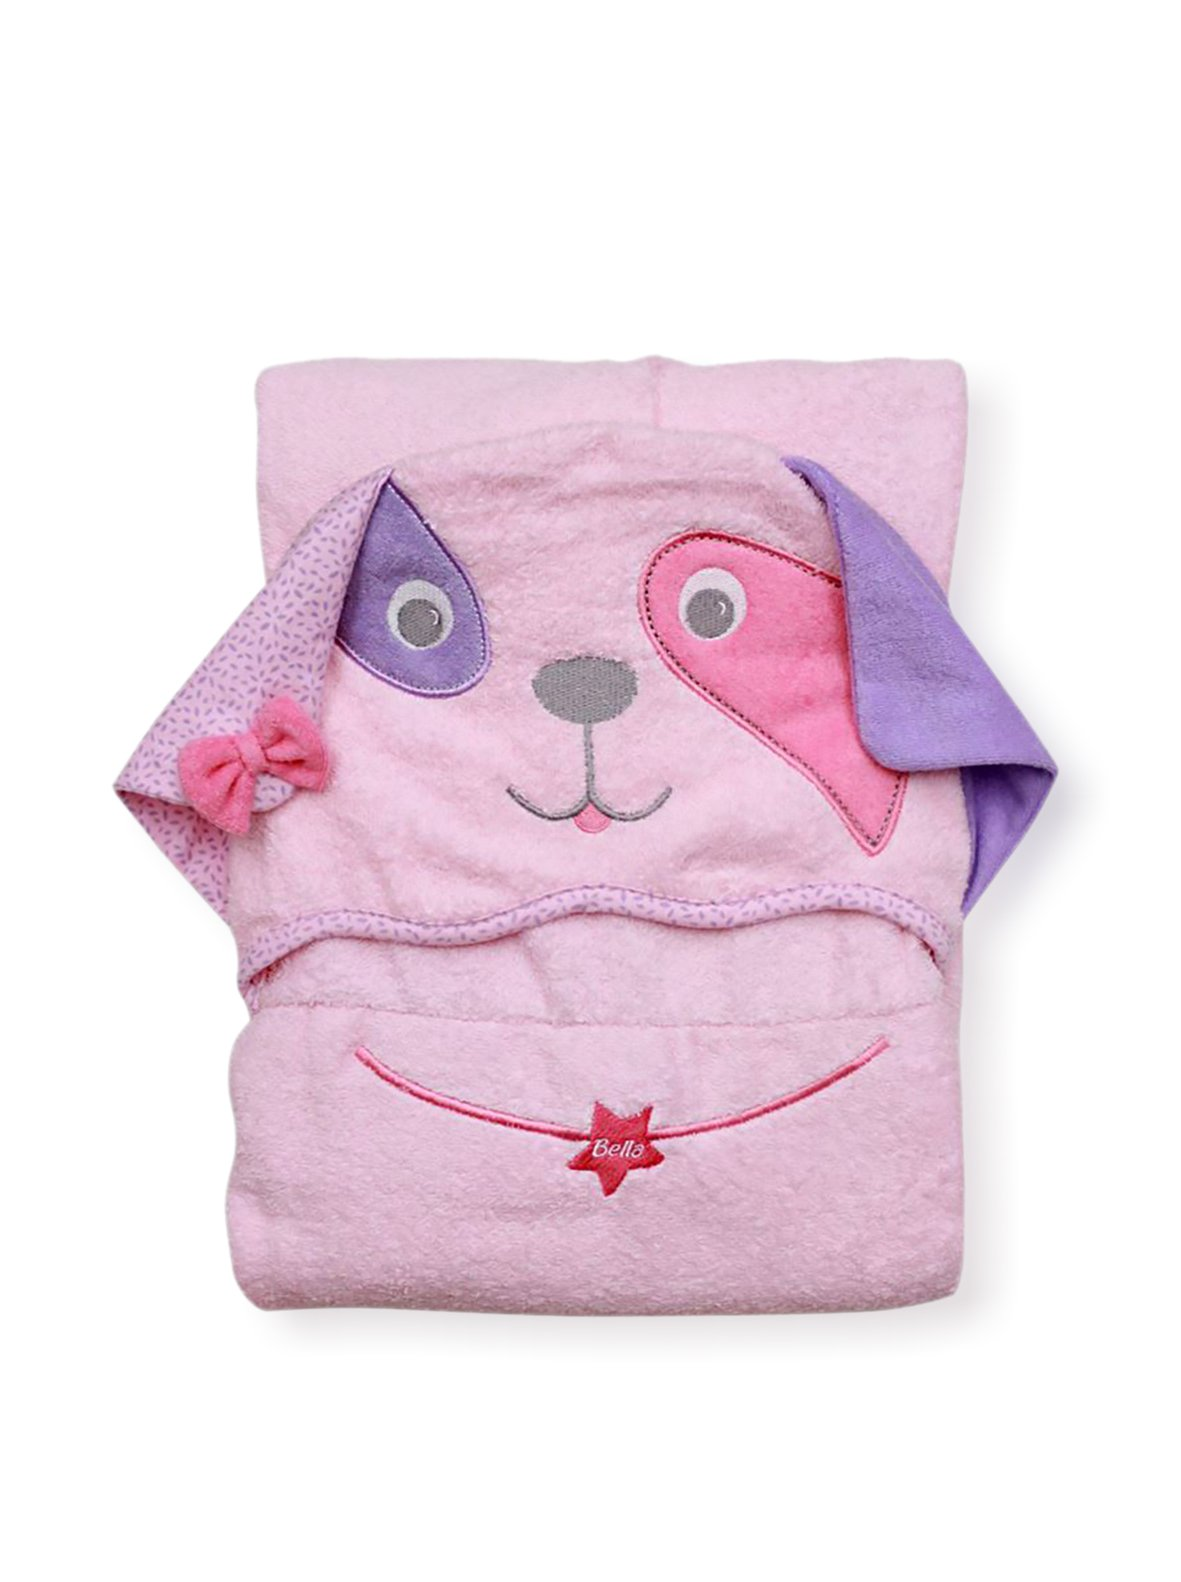 Extra Large 40''x30'' Absorbent Hooded Towel, Pink Dog, Frenchie Mini Couture